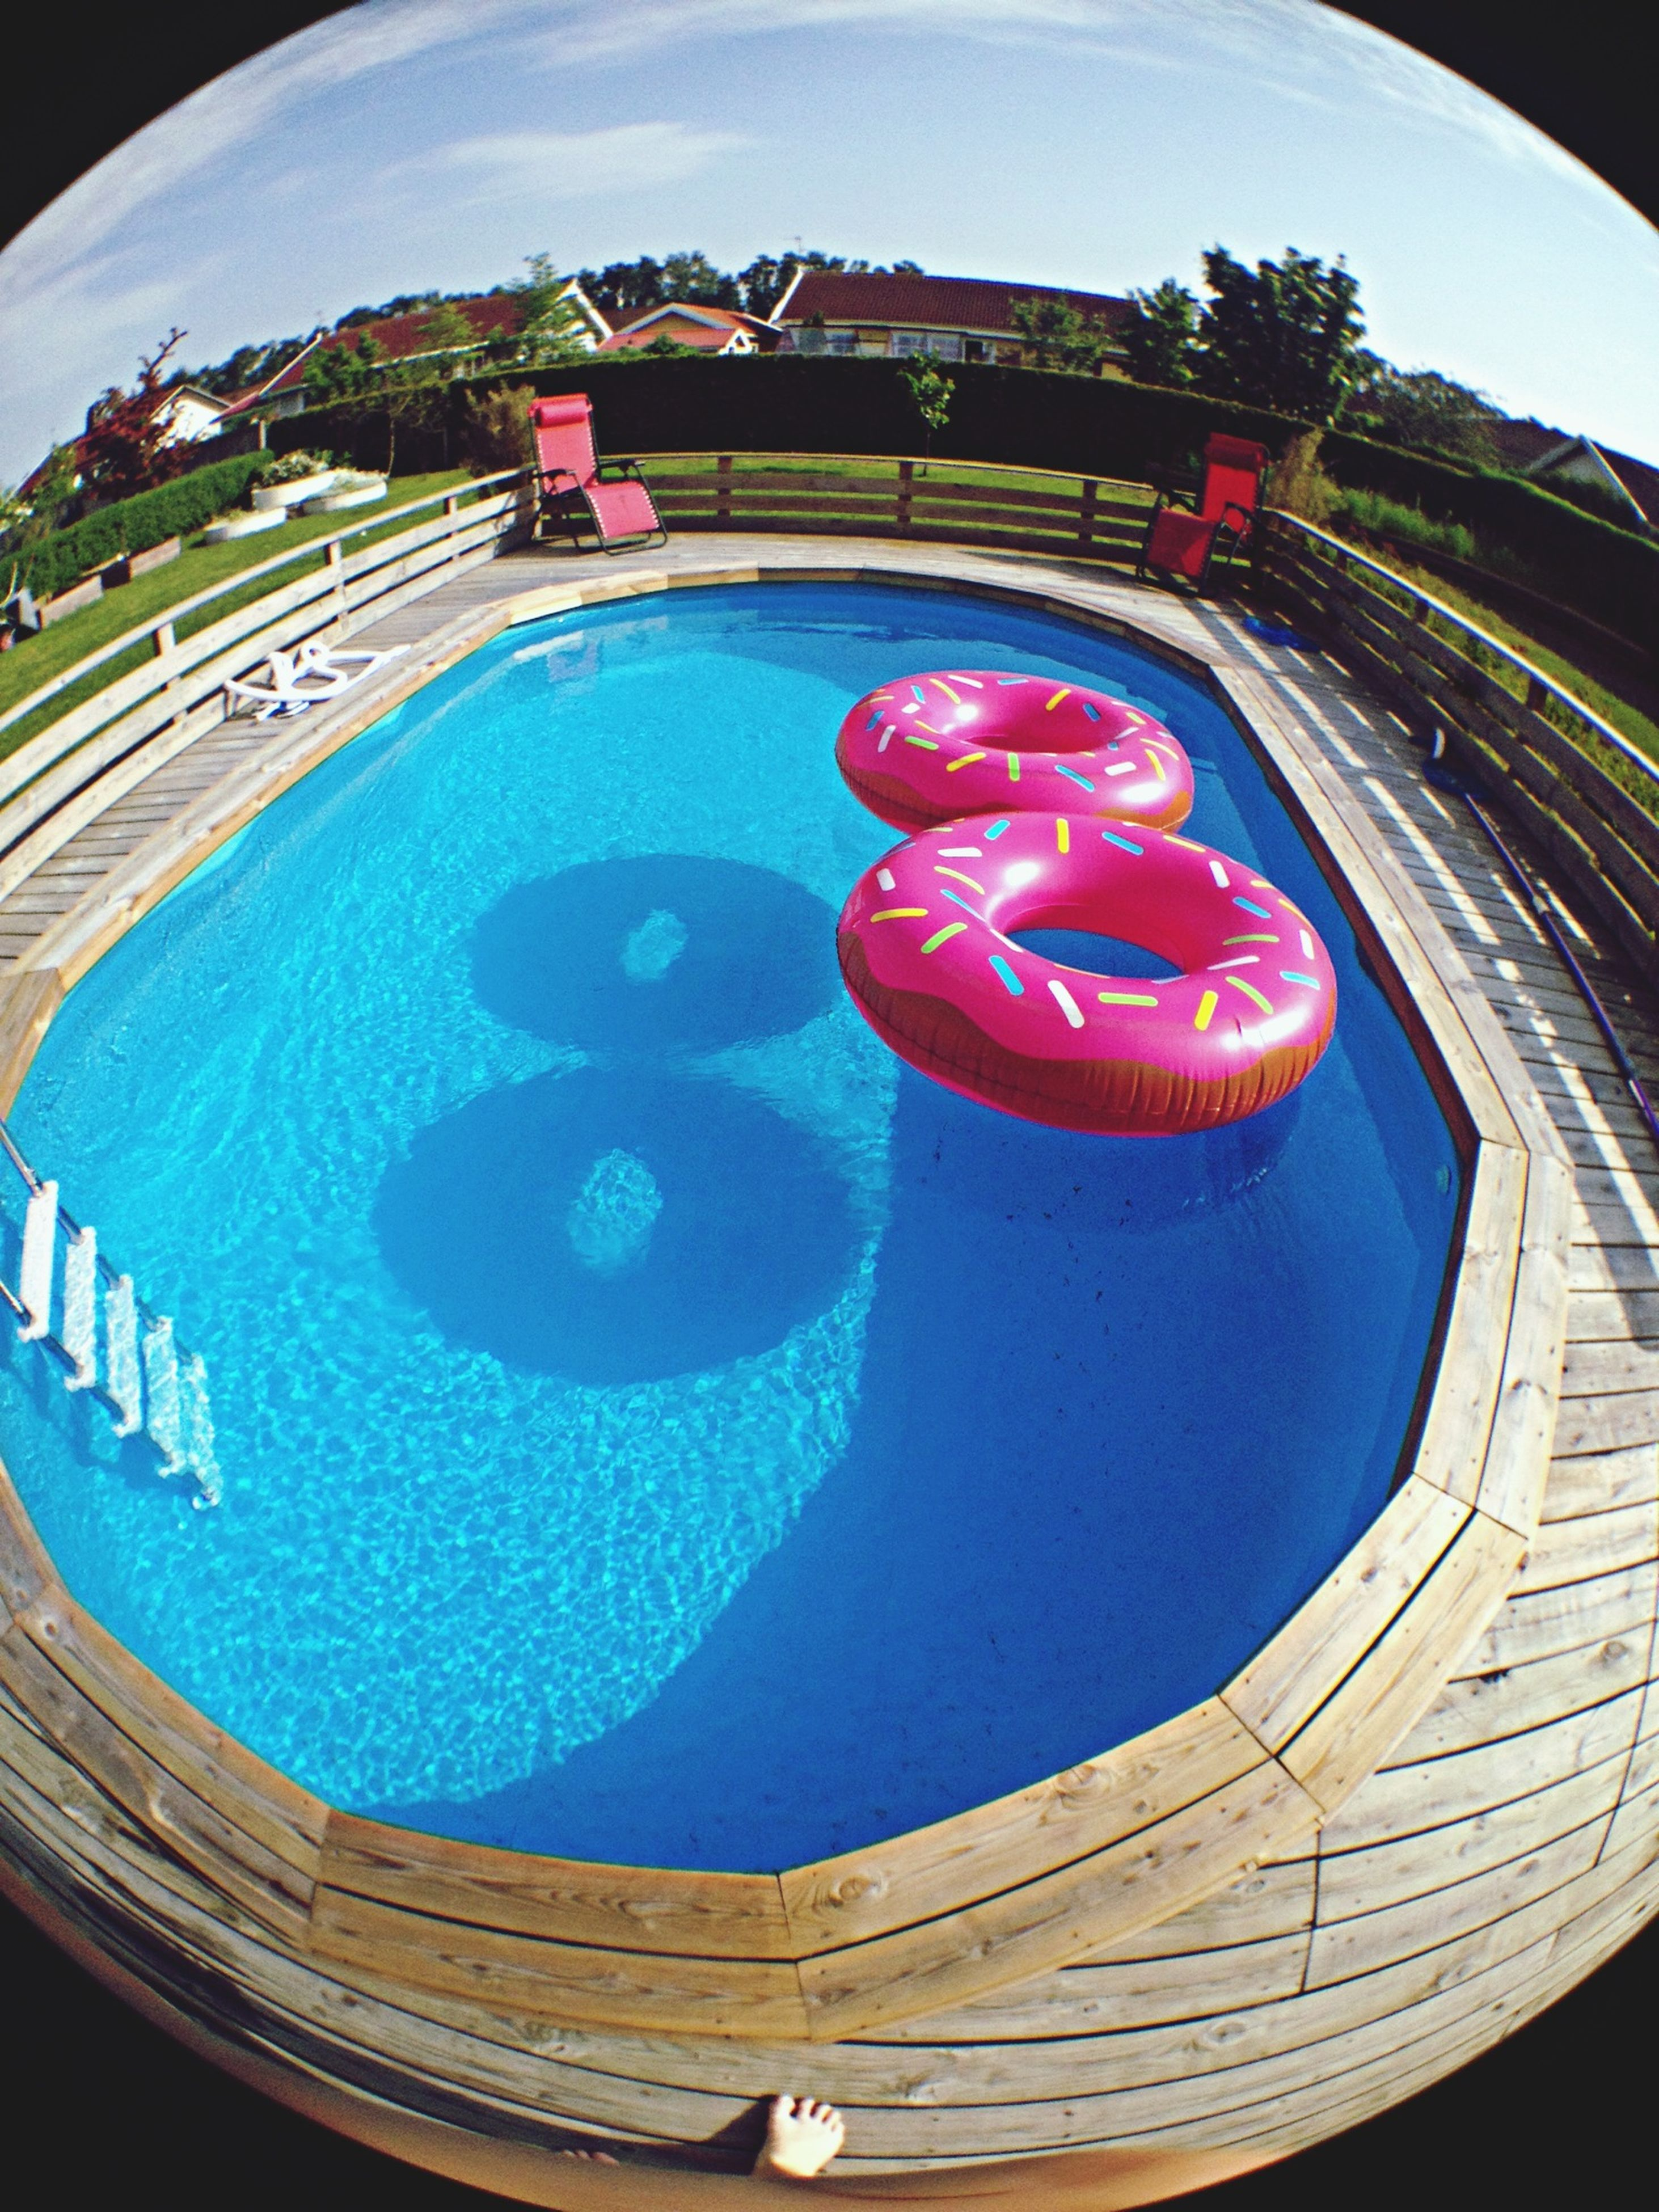 blue, built structure, architecture, circle, fish-eye lens, building exterior, water, multi colored, sky, swimming pool, day, high angle view, outdoors, reflection, no people, nature, part of, sunlight, round, red